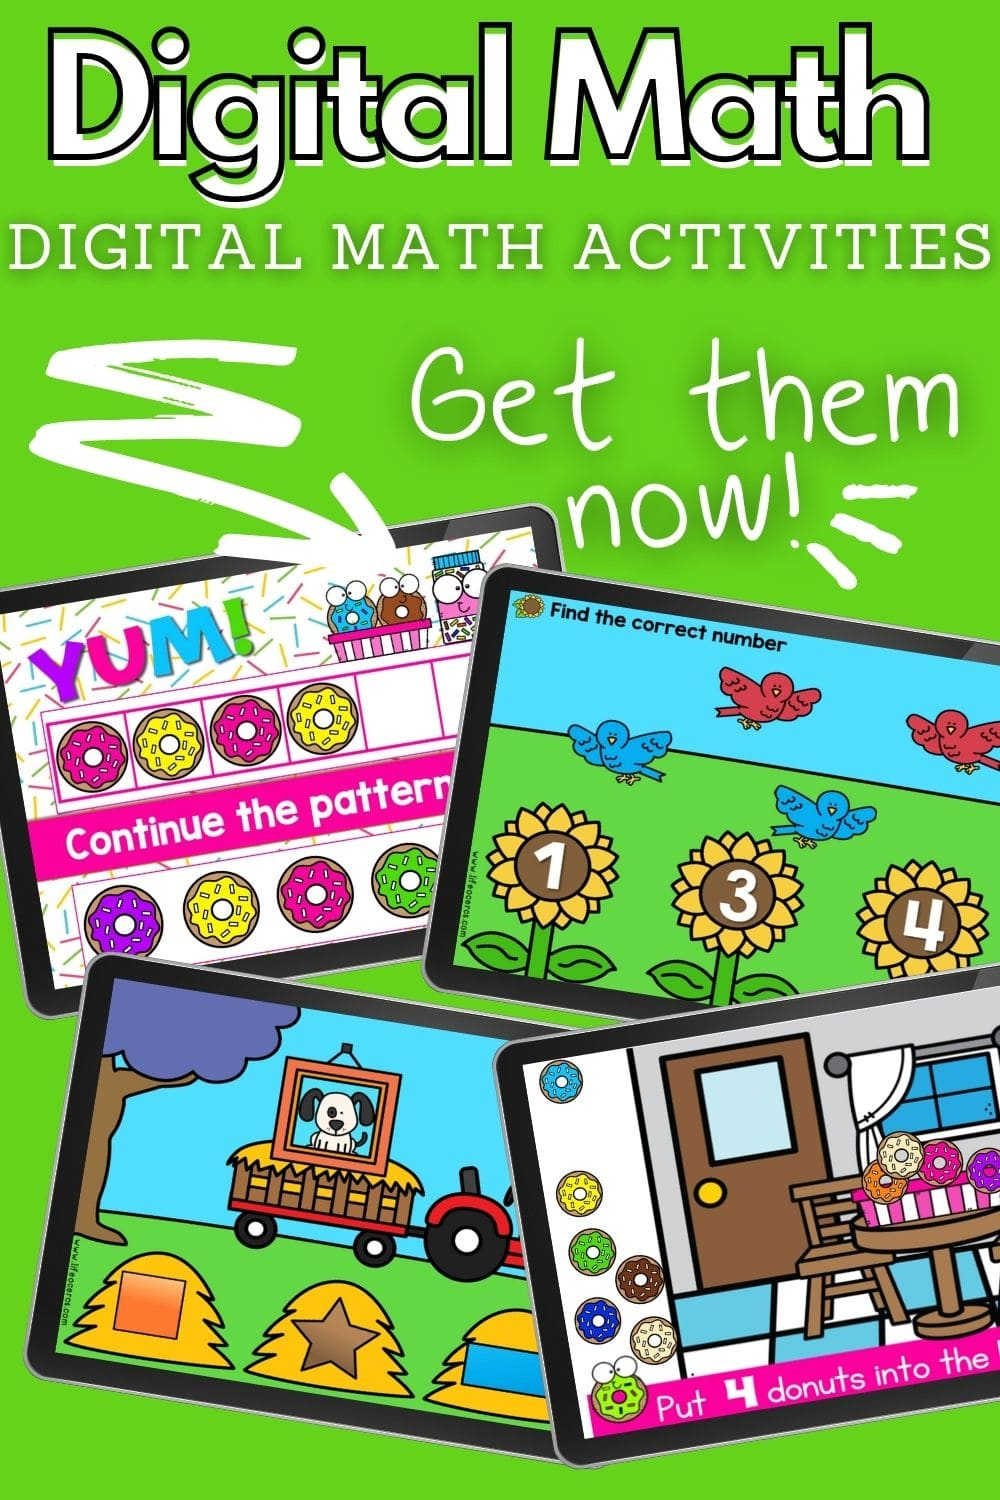 Click to go to the digital math activities for kids page